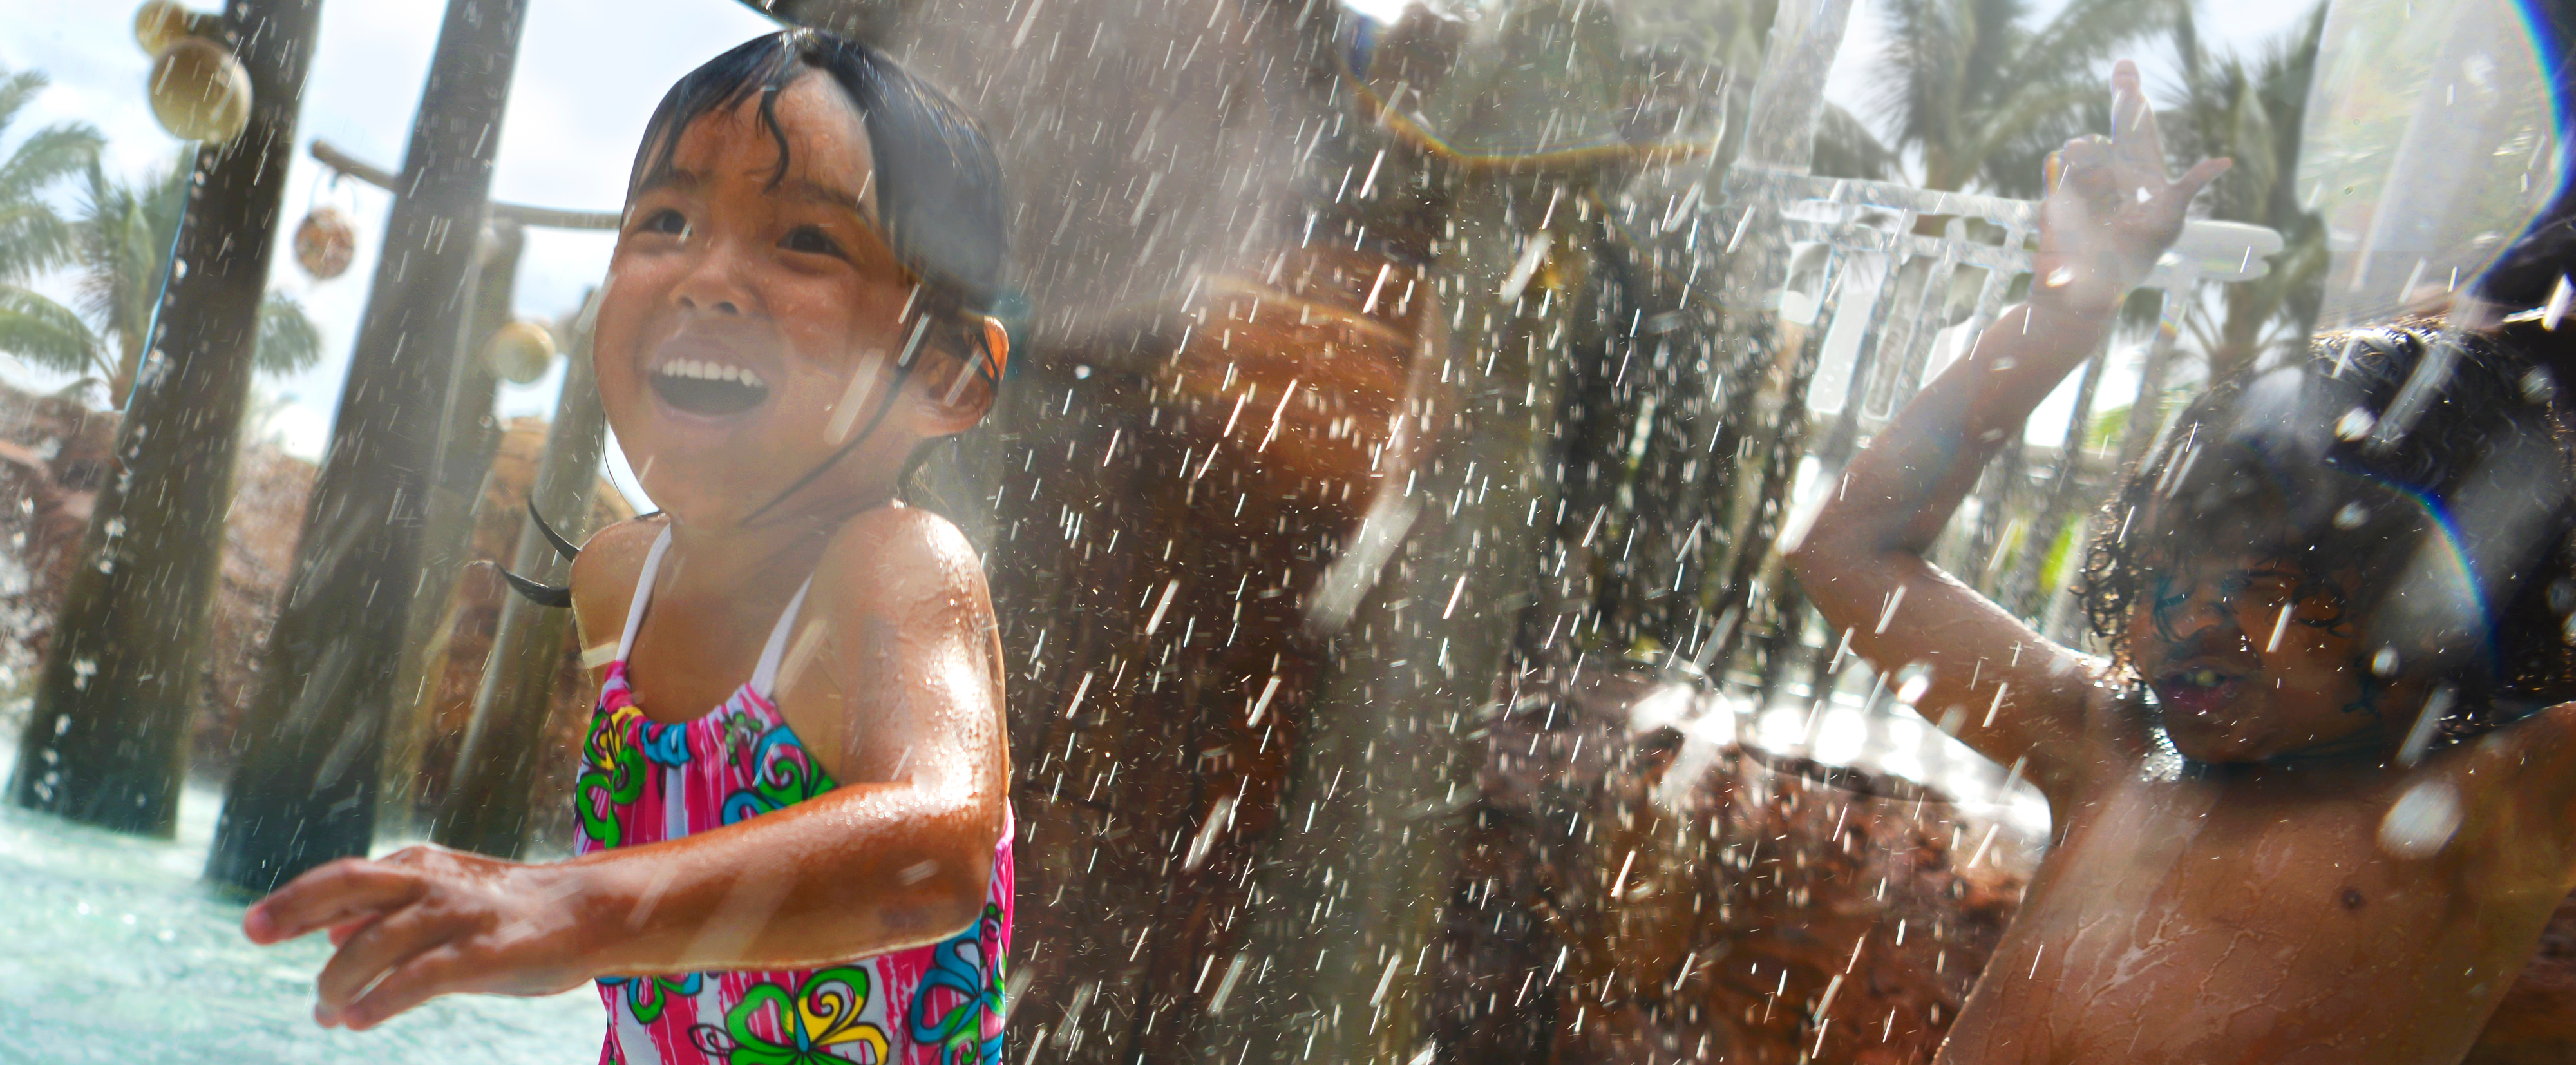 A boy and girl laugh and splash about beneath the cascading water of the Menehune Bridge play area